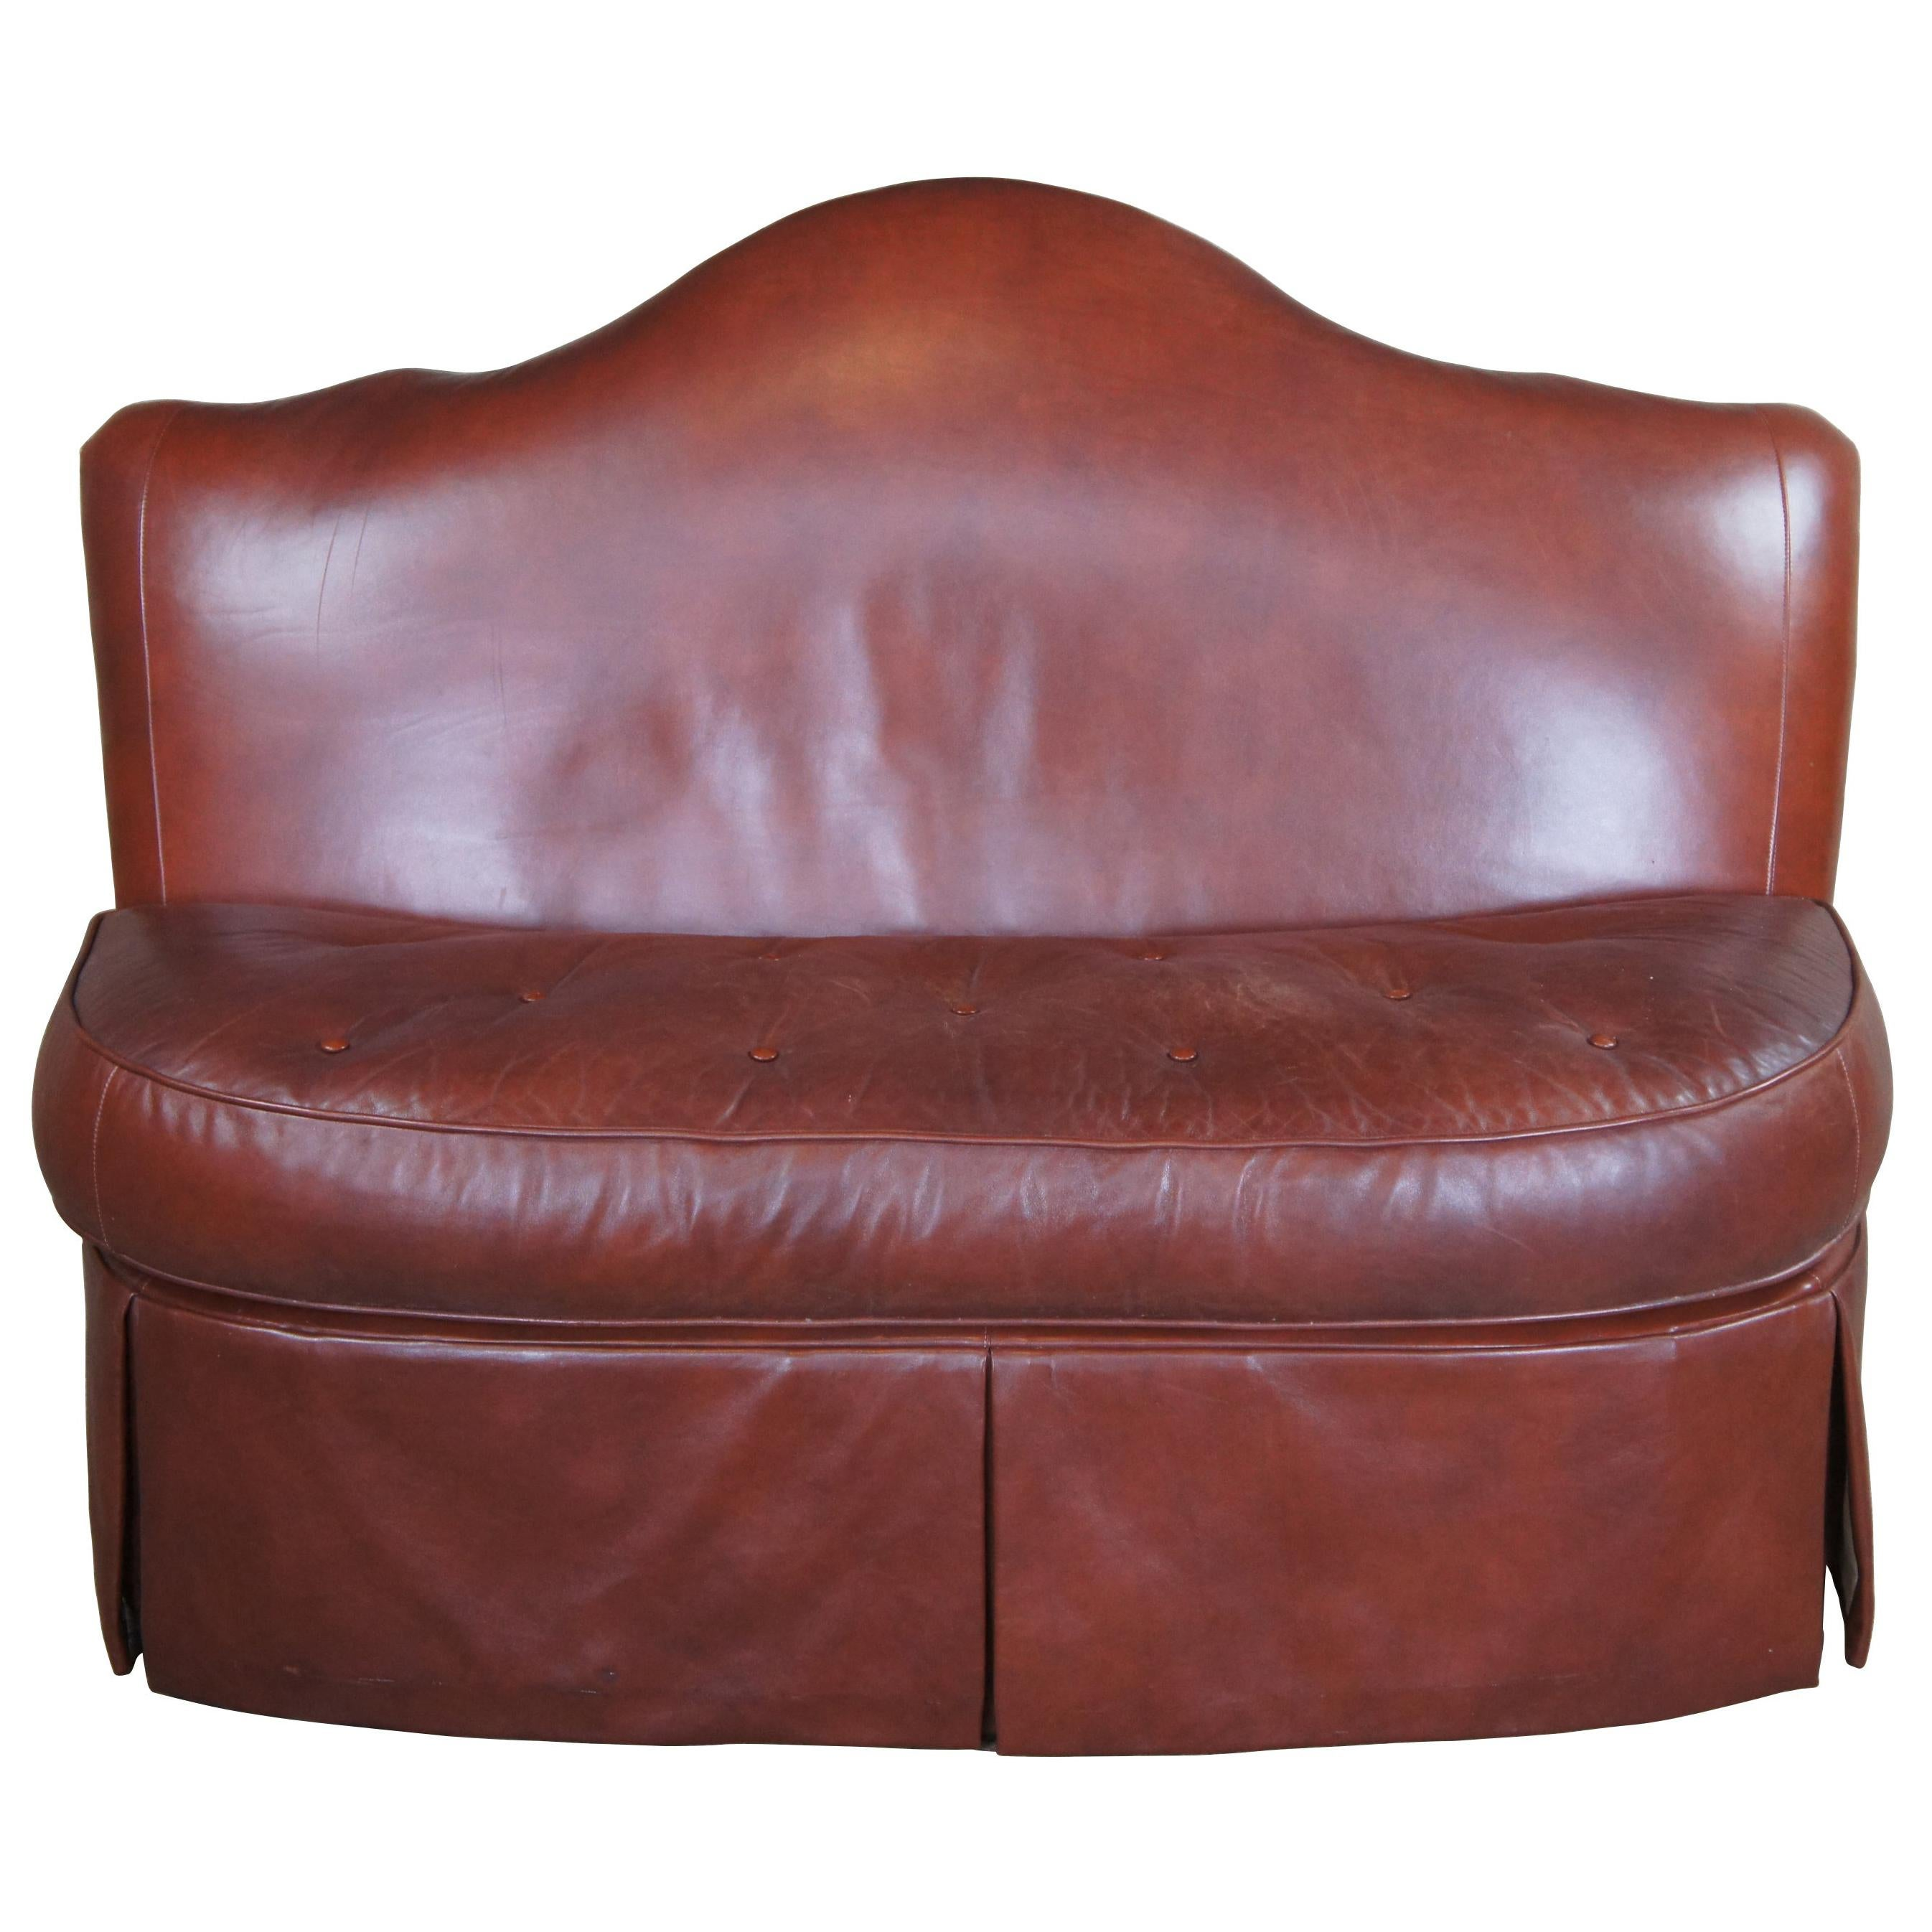 Century Furniture Brown Leather Tufted Camelback Banquette Bench Love Seat